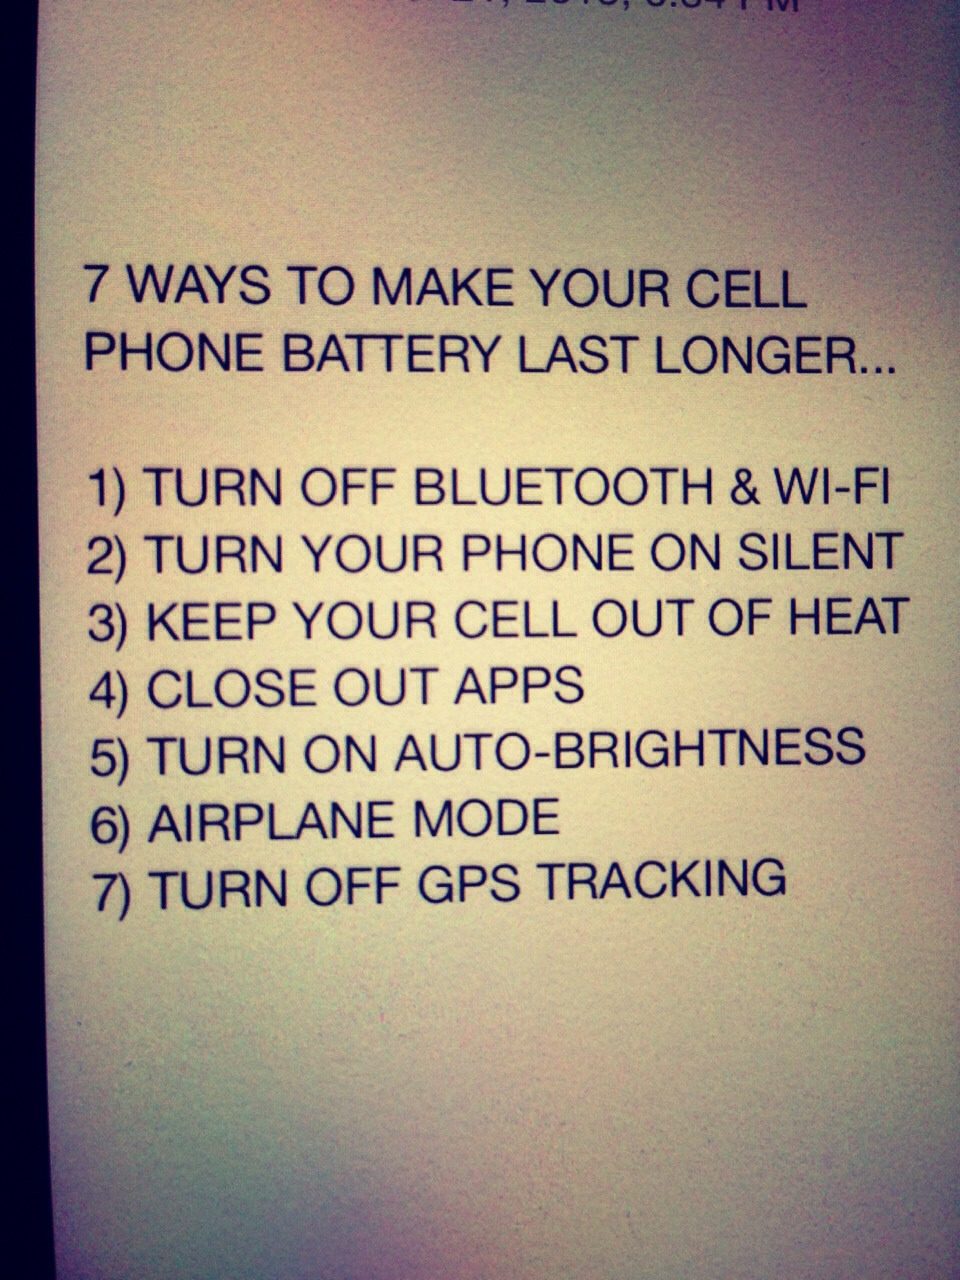 7 WAYS TO MAKE YOUR CELL PHONE BATTERY LAST LONGER ...